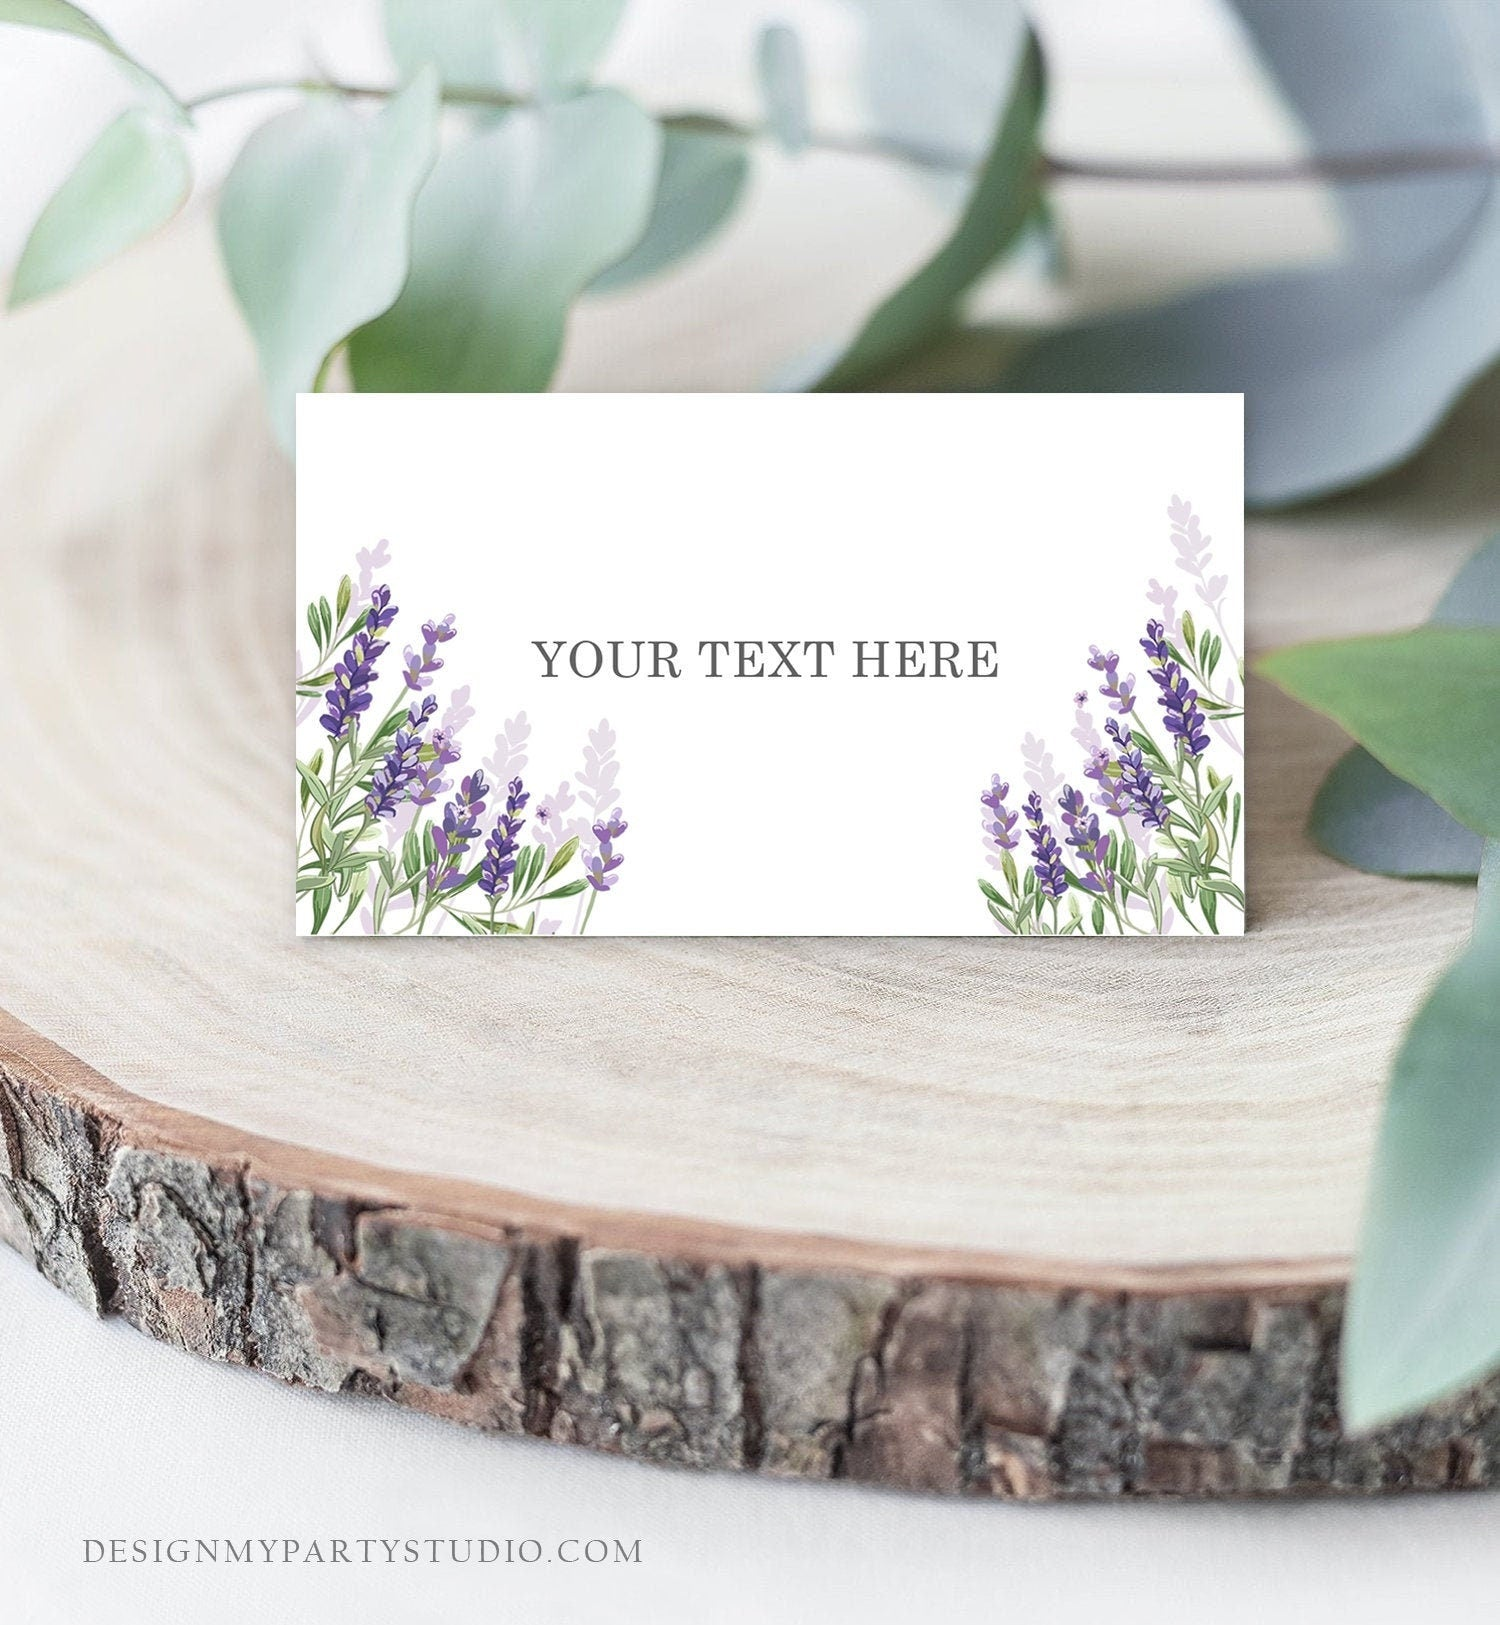 Editable Lavender Food Labels Place Card Lavender Tent Card Escort Card Bridal Shower Boho Greenery Floral Corjl Template Printable 0206